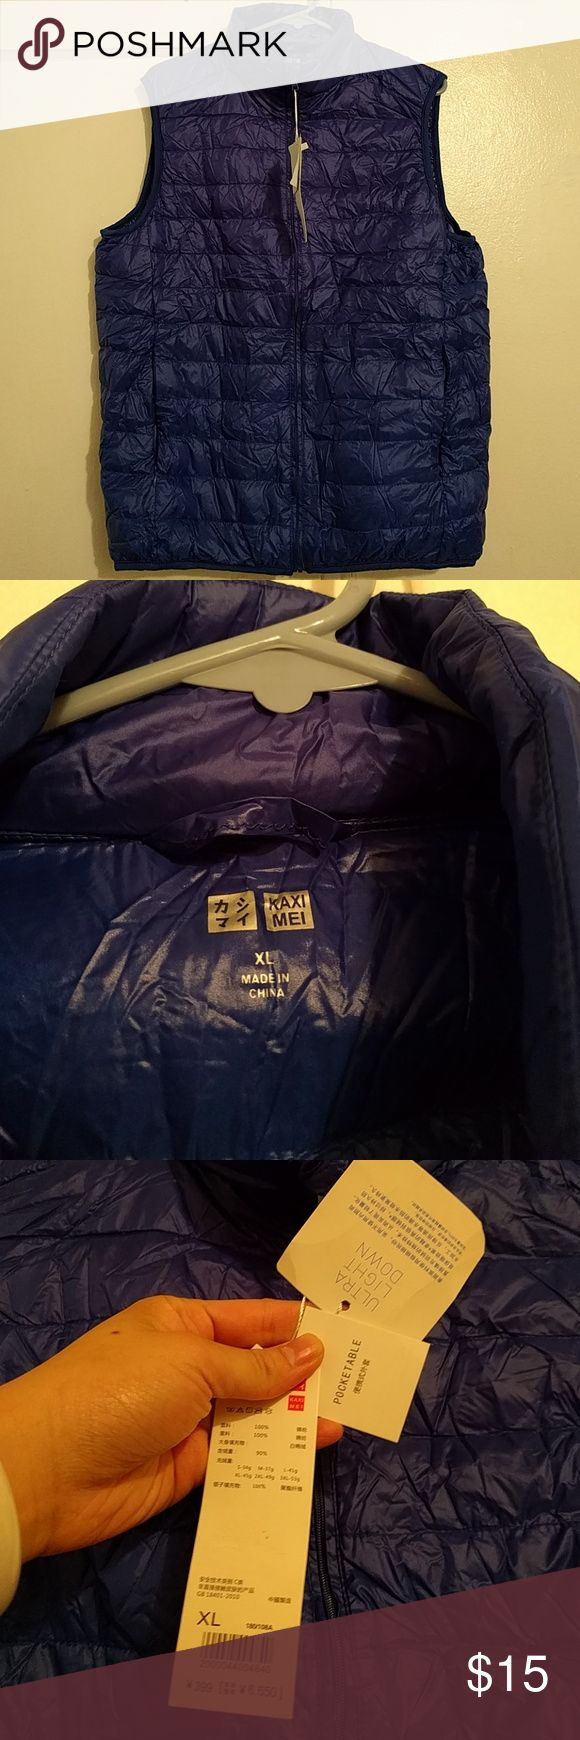 Ultra light navy blue packable down vest This is not Uniqlo brand. Looks like it but it is not. Thinner than the real thing but same material. Comes with the packable bag.  Tagged Uniqlo for exposure. This is not Uniqlo. Uniqlo Jackets & Coats Vests